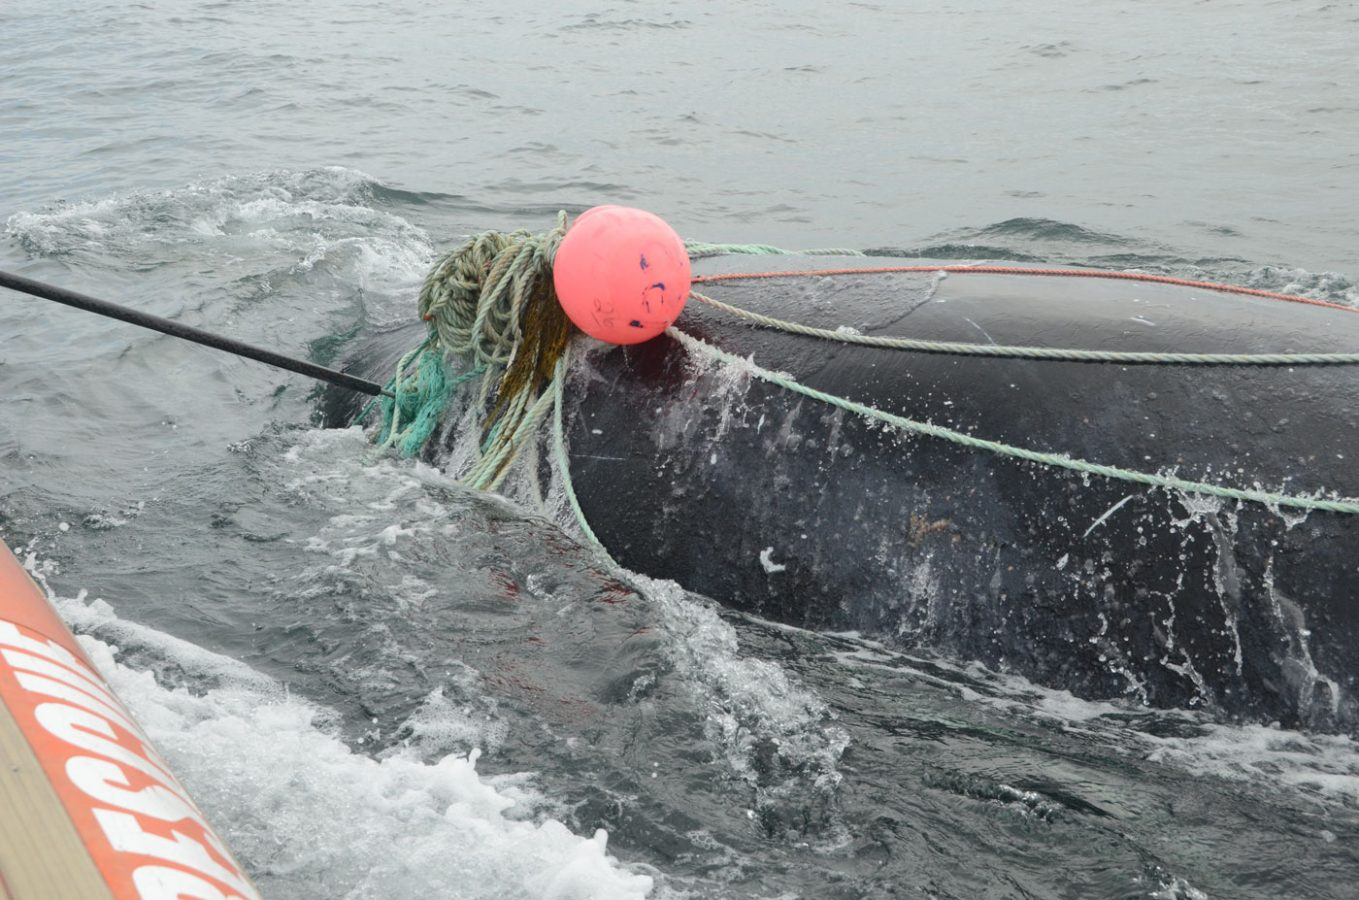 whale at surface dragging lots of rope